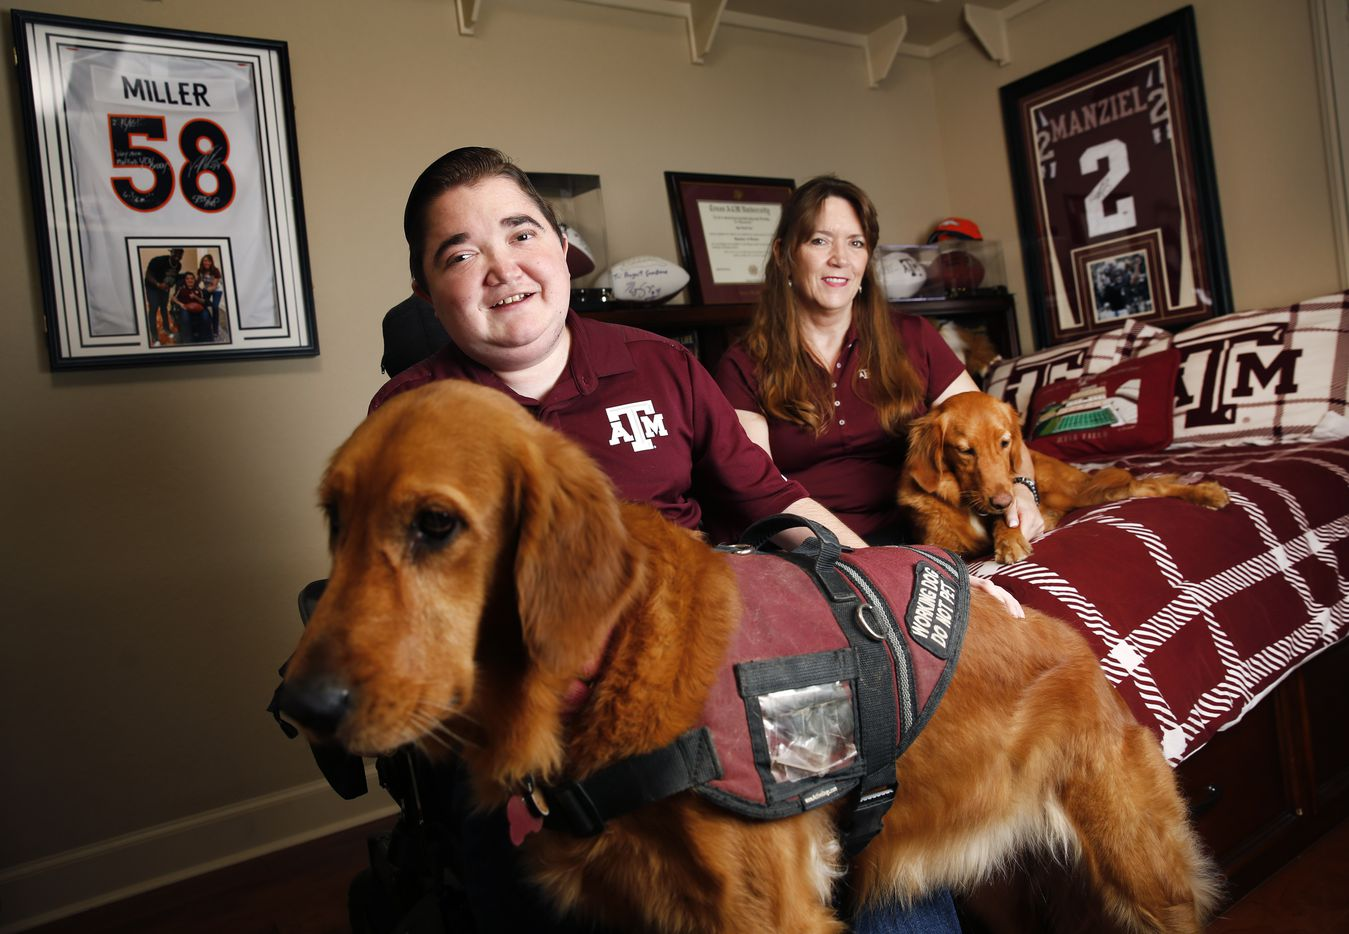 Texas A&M graduate student Kyle Cox (left), who has Duchenne muscular dystrophy, poses with his female golden retriever service dog, Amber, and his mother, Kristen Cox and Abby, another adopted retriever, in his A&M themed bedroom in College Station, Texas, Wednesday, September 11, 2019. Amber wasn't adopted from the A&M research laboratory where they test dogs with Duchenne, but Abby was.